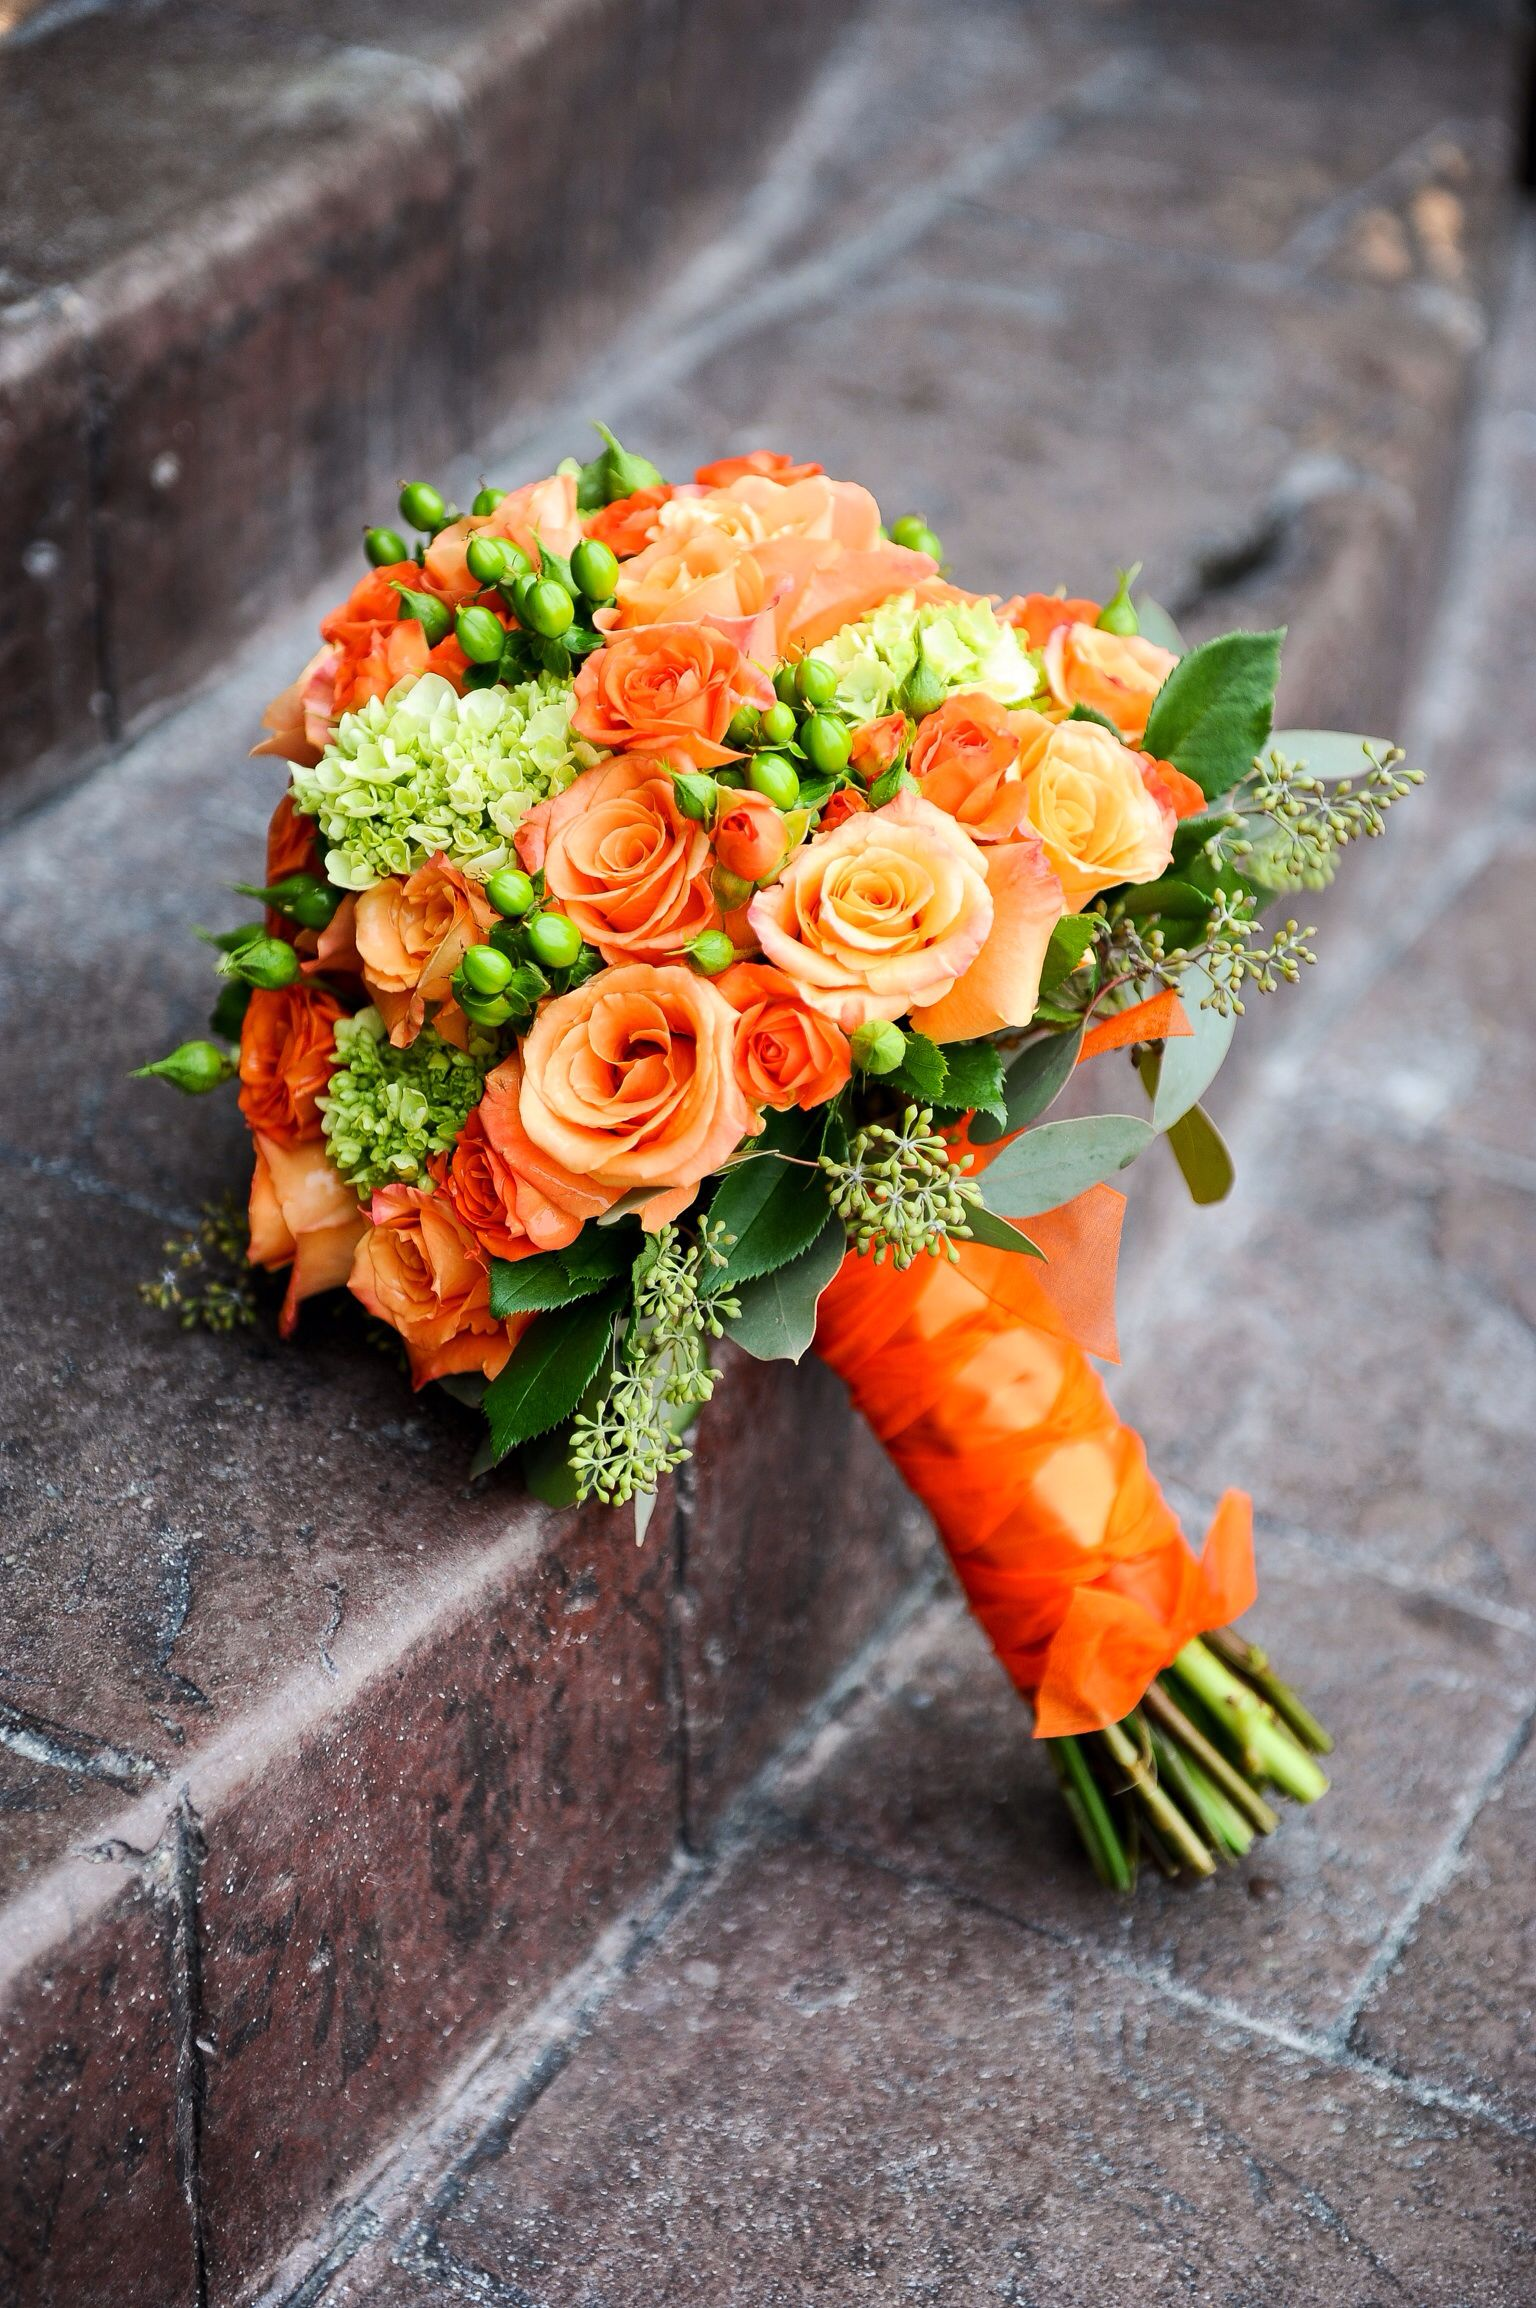 Obsessed With This Bouquet Orange Roses And Green Hydrangeas Wedding